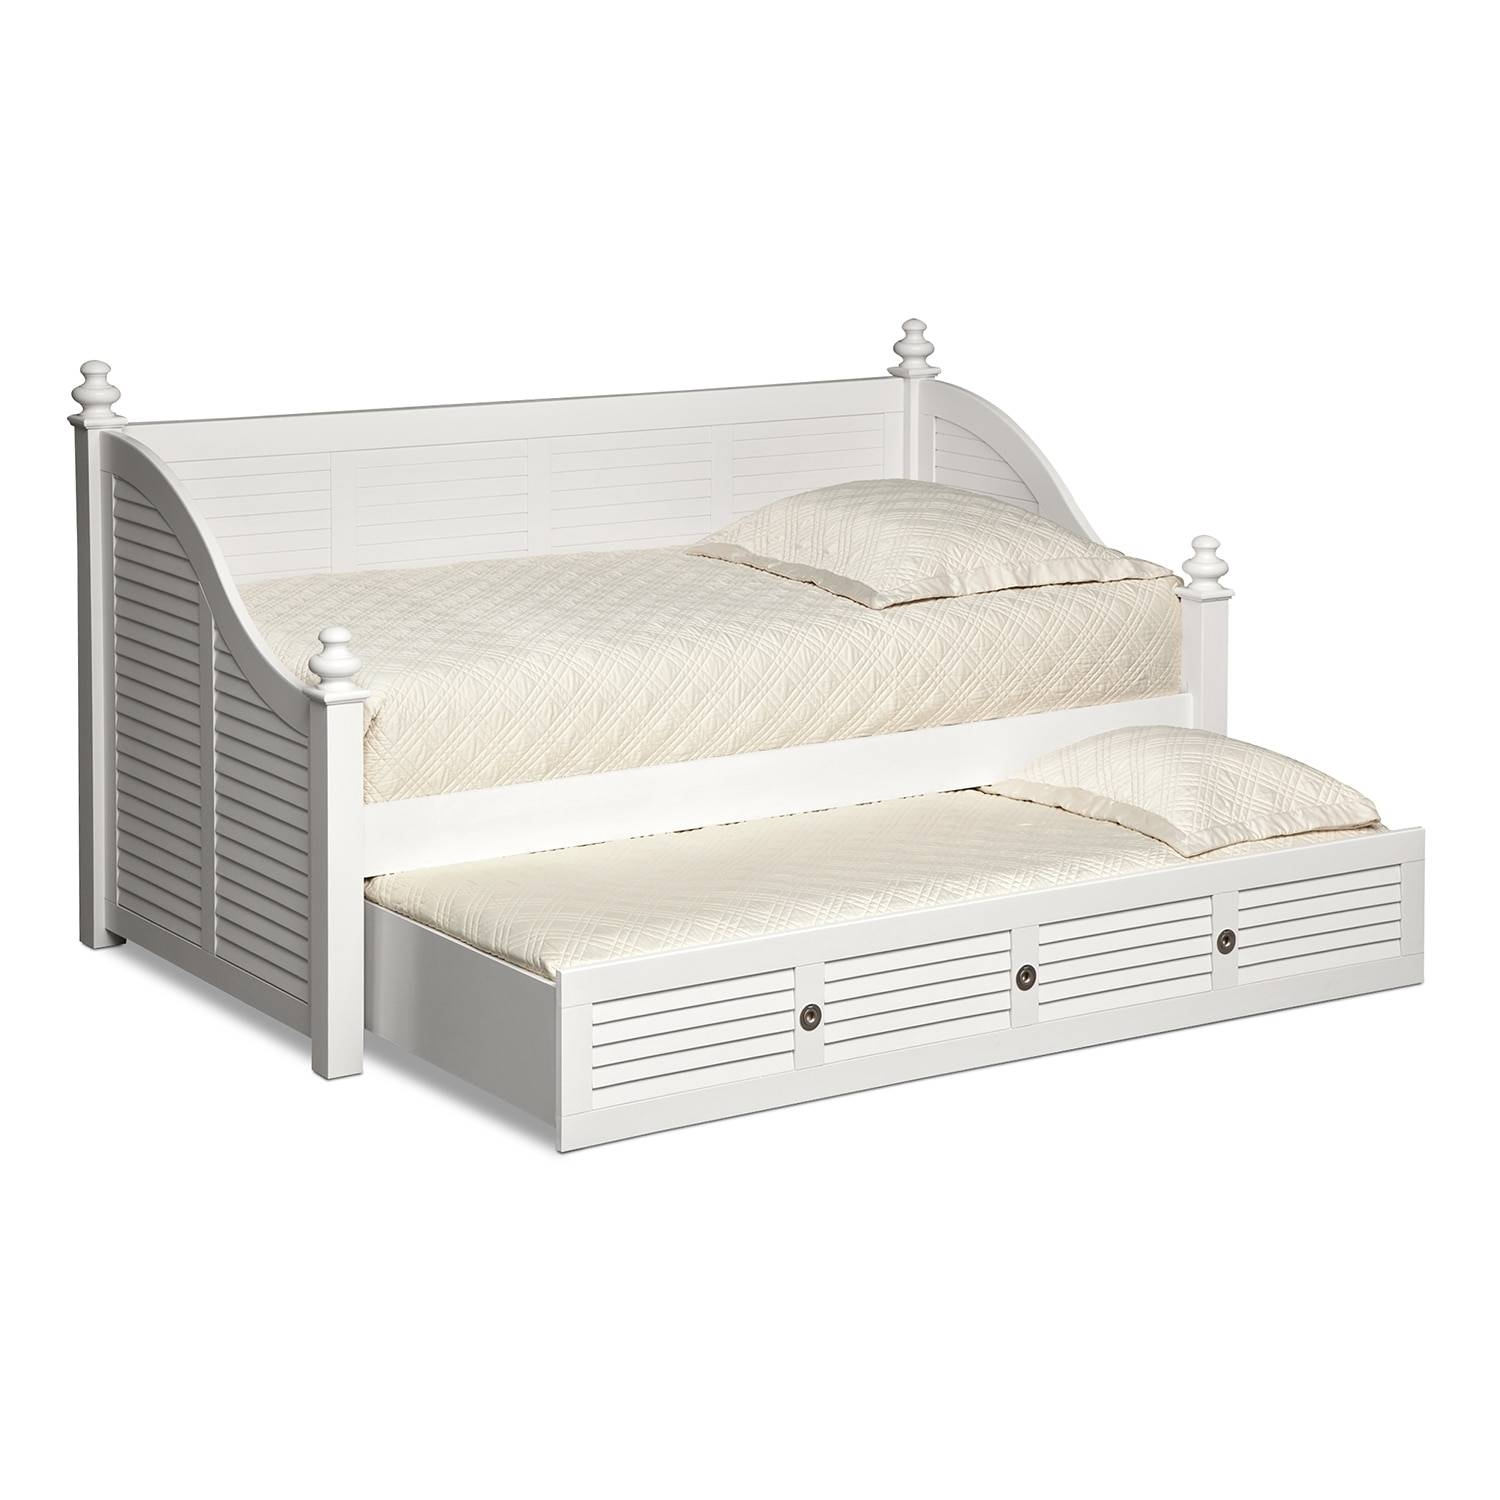 Seaside Twin Daybed With Trundle – White | Value City Furniture Throughout Sofas Daybed With Trundle (View 8 of 15)